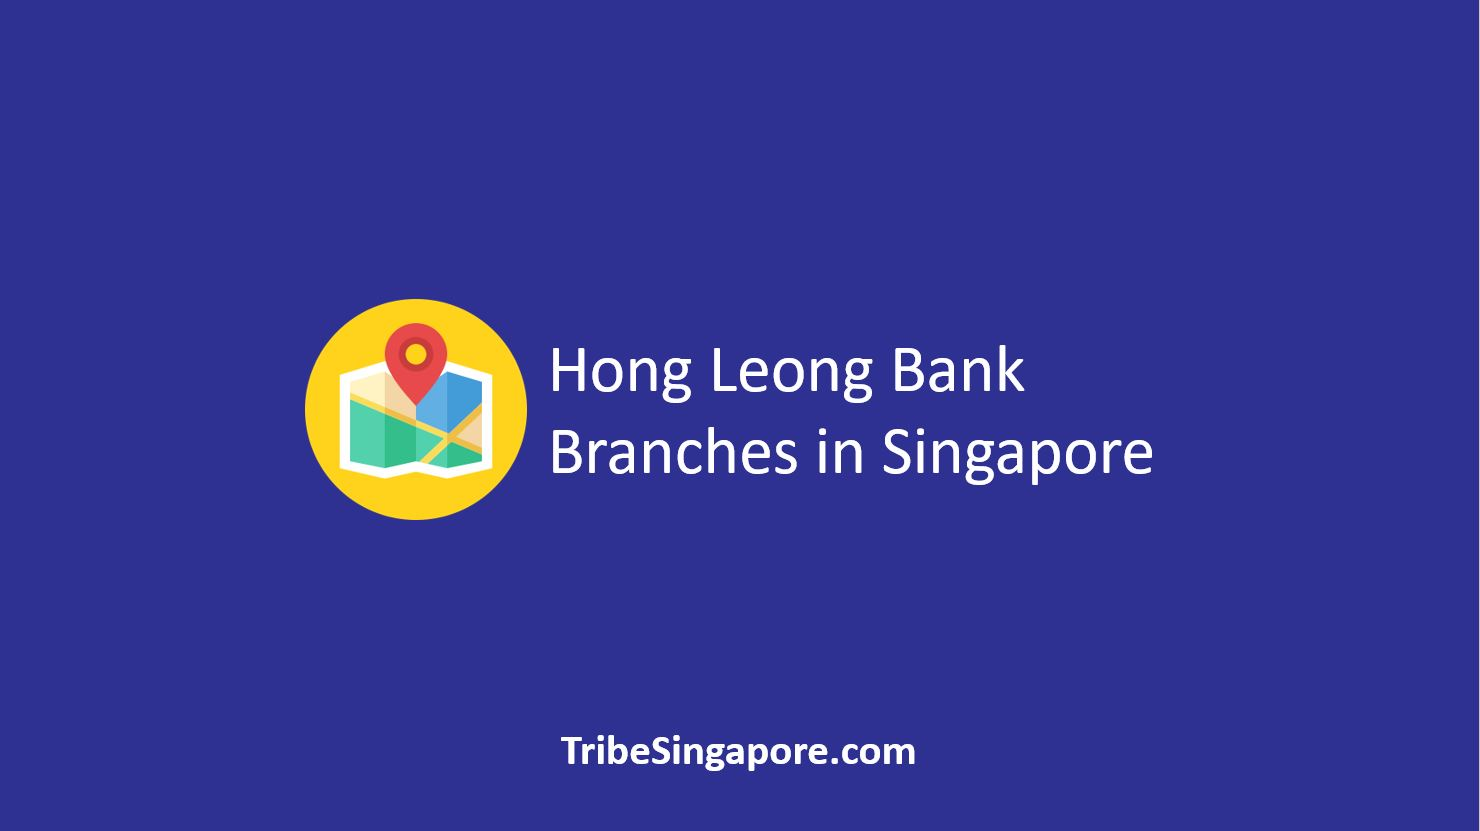 Hong Leong Bank Branches in Singapore